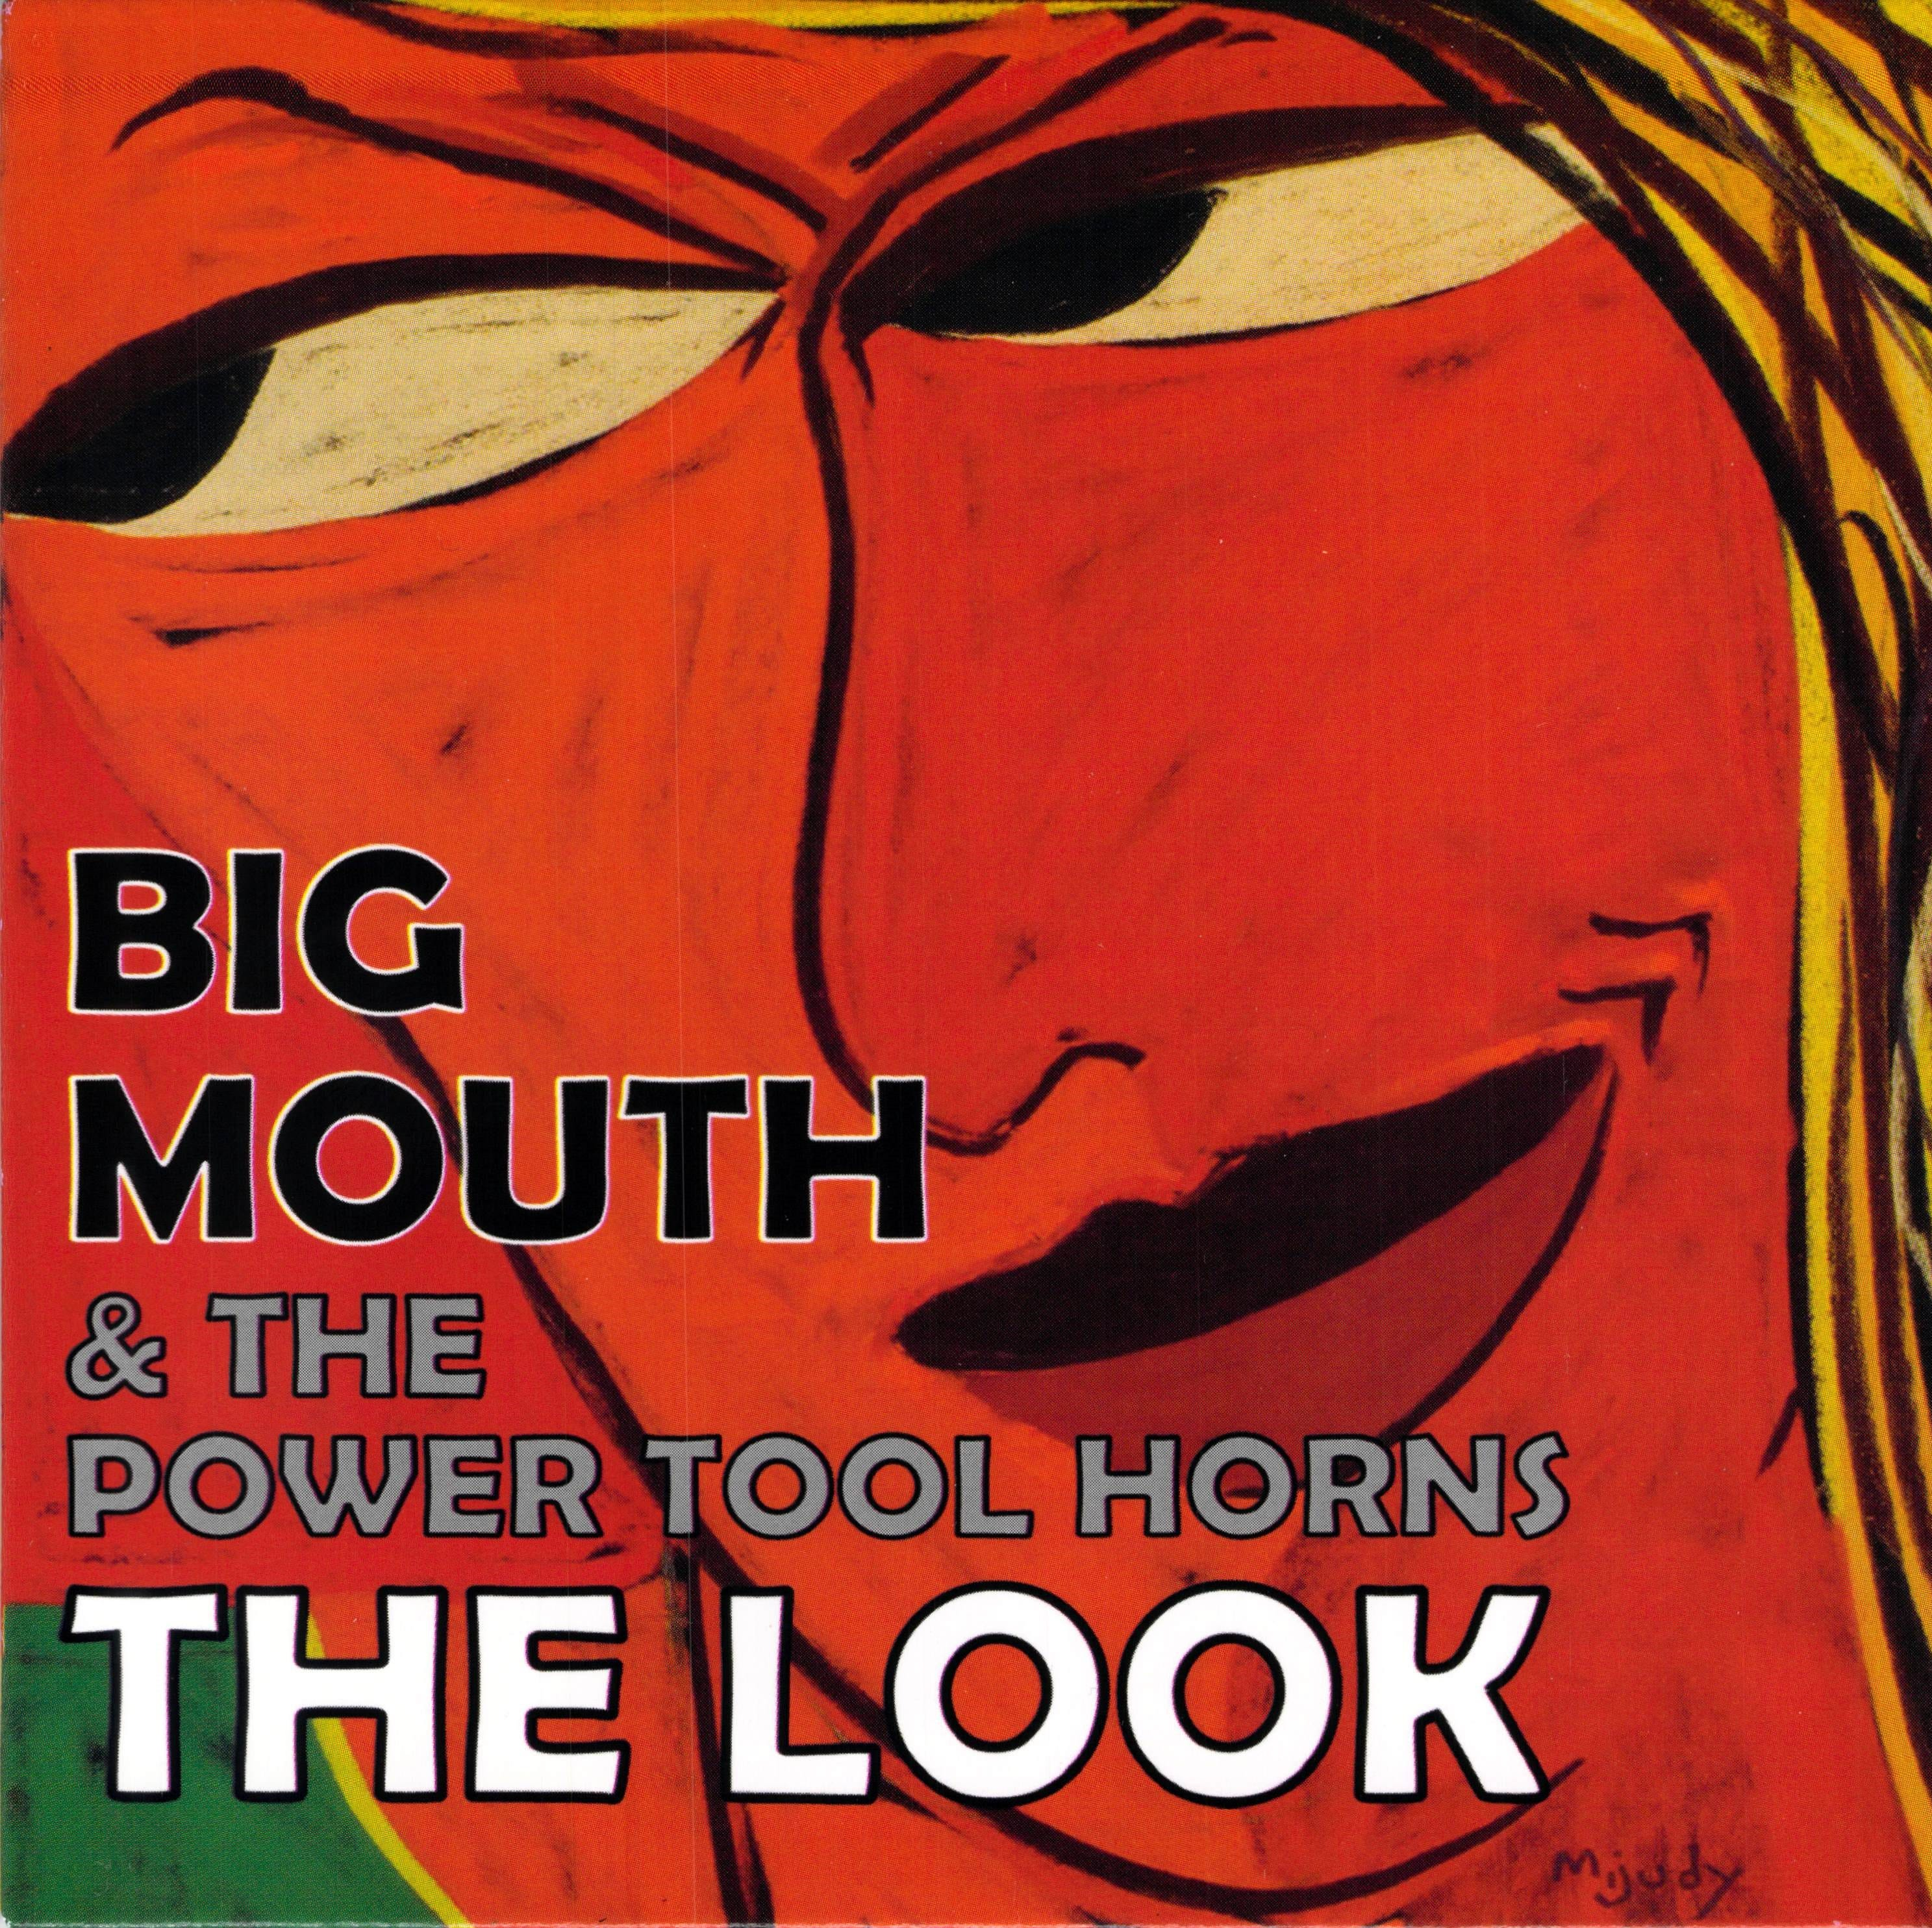 More than a decade since its last one, Big Mouth releases album of original music